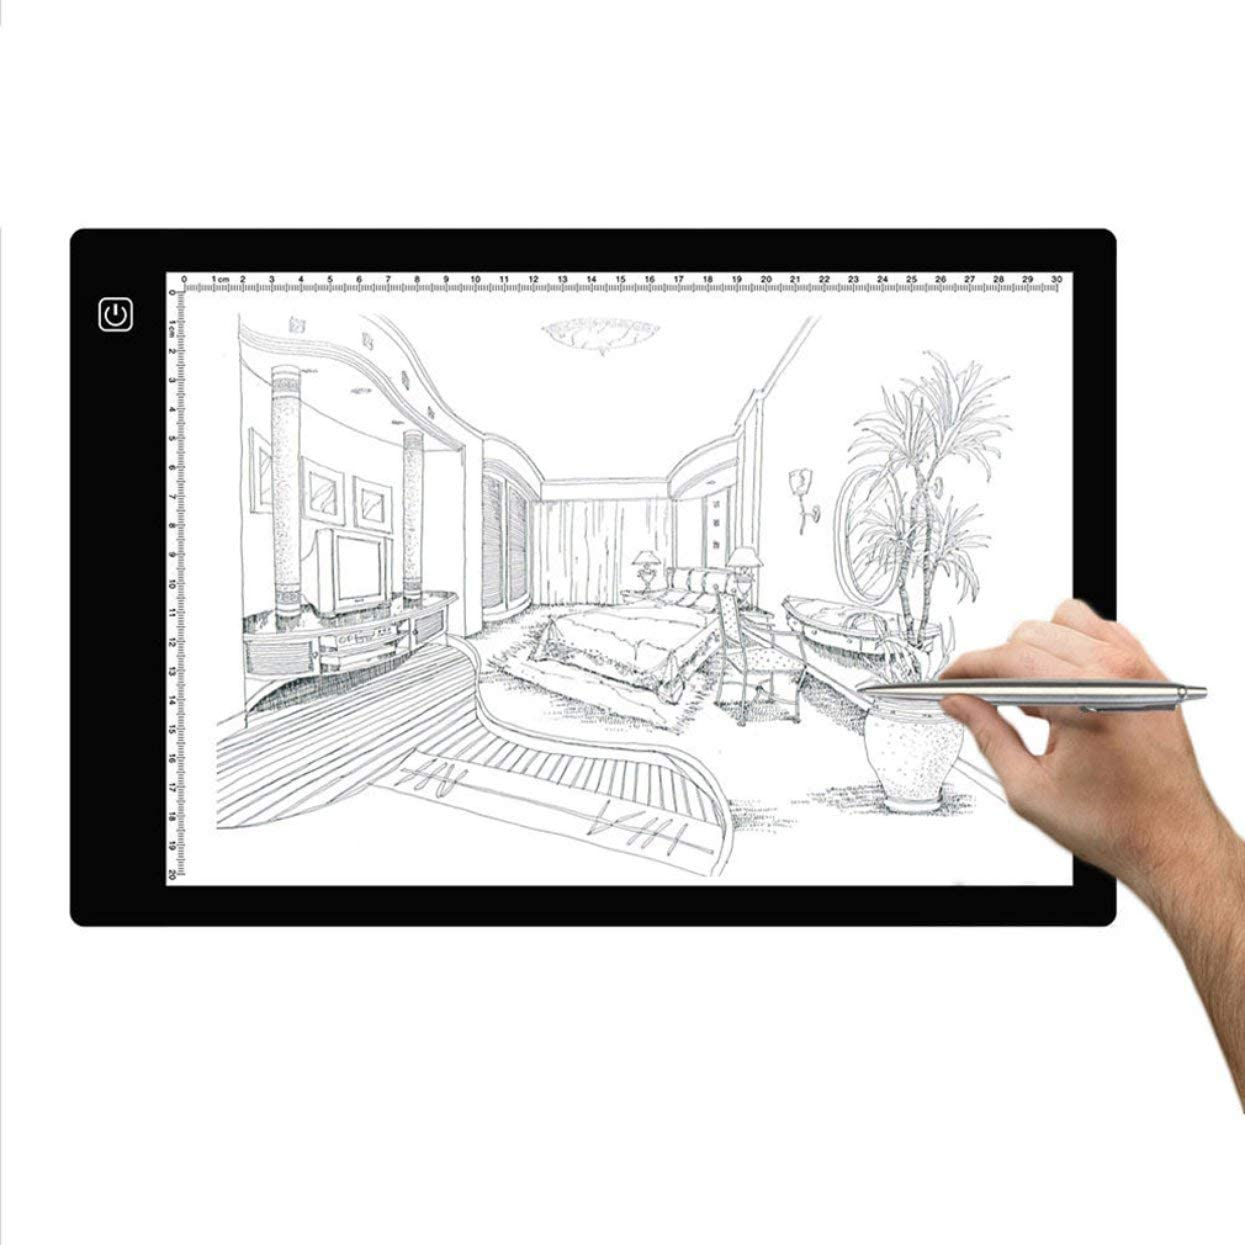 A4 Light Pad,Norbase Ultra-Thin Portable Tracing LED Copy Board Table,Adjustable USB Power Light Box Tracer for Drawing,Sketching,Animation,Stenciling,Calligraphy with 12 Color Pencils